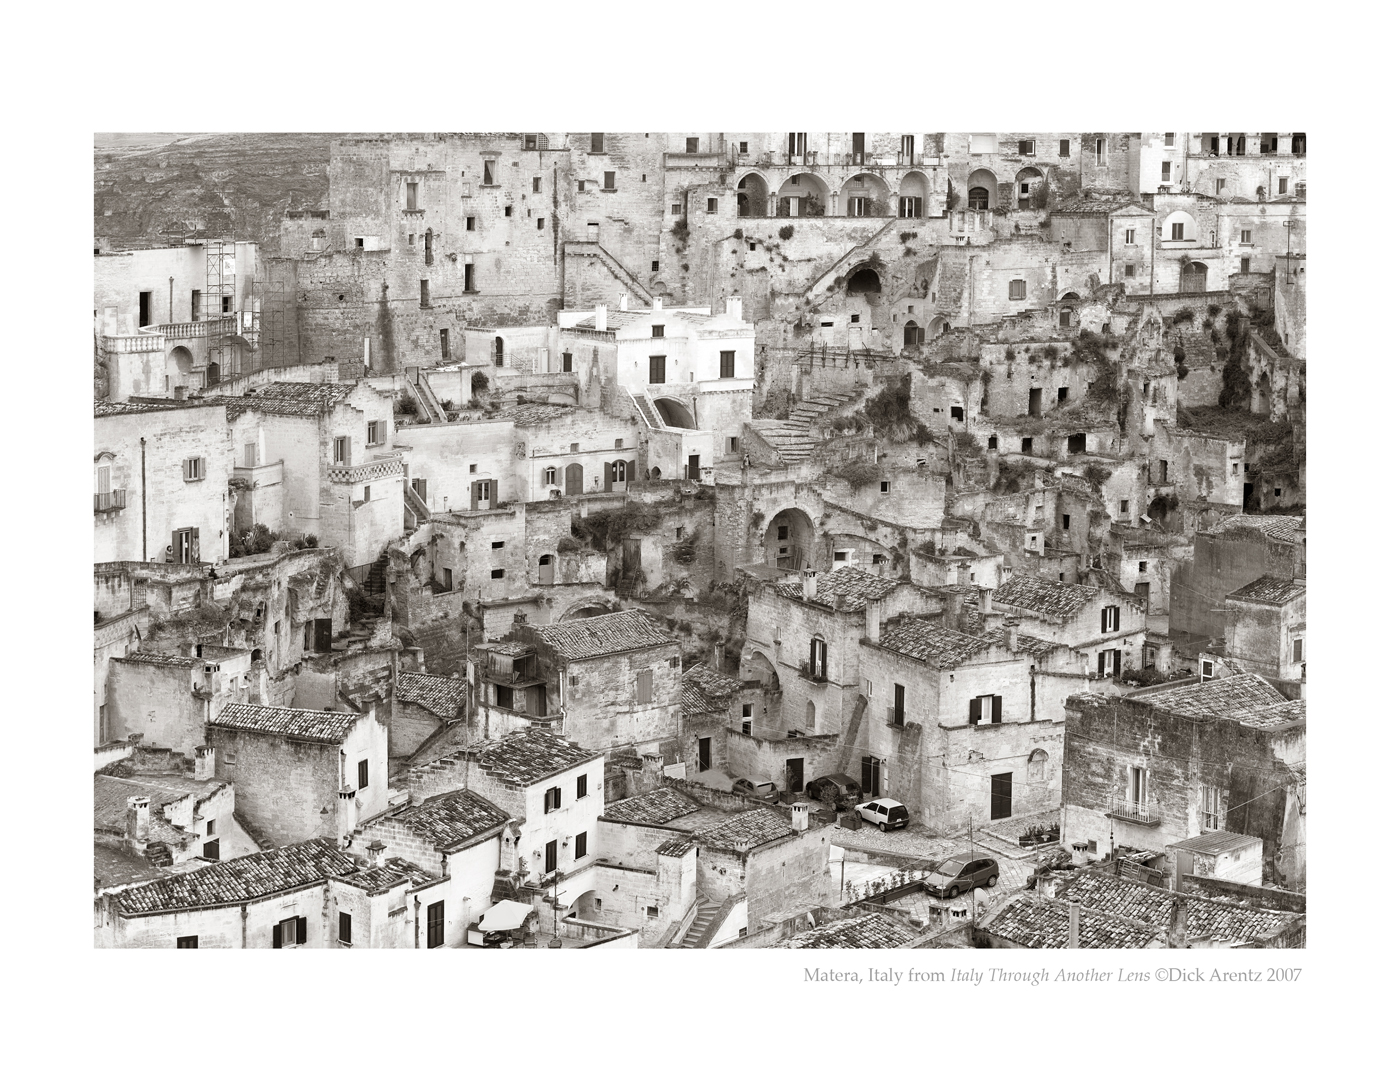 Matera, Italy - Italy Through Another Lens